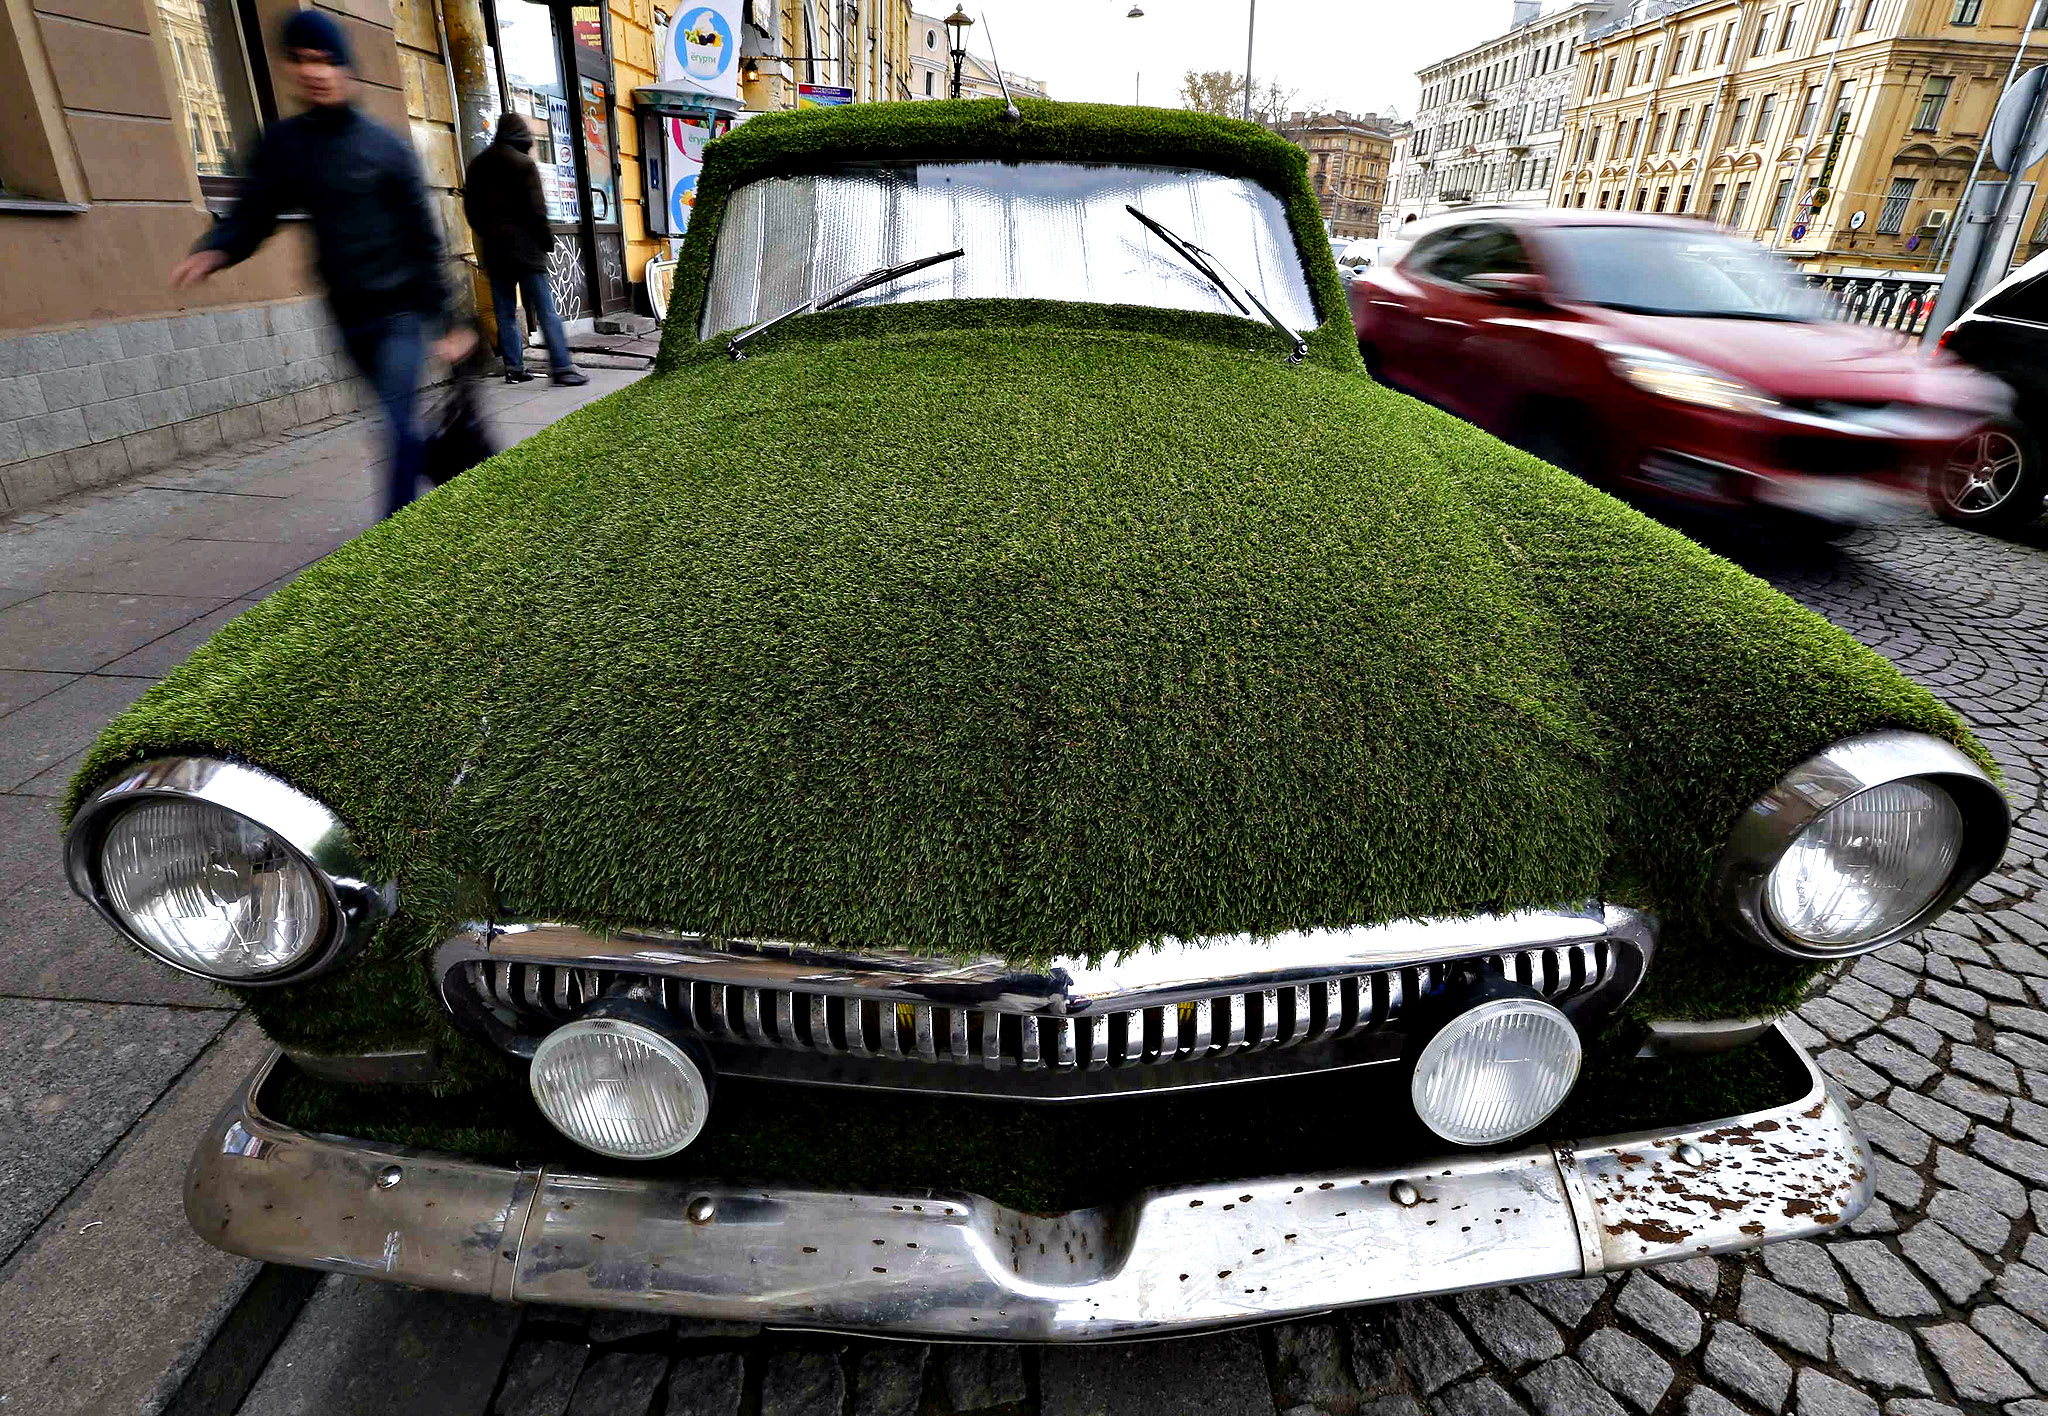 A customized Soviet-era Volga GAZ-21 vintage car covered by artificial grass, advertising for a dairy store, is seen on a parking lot in St. Petersburg, October 17, 2013.